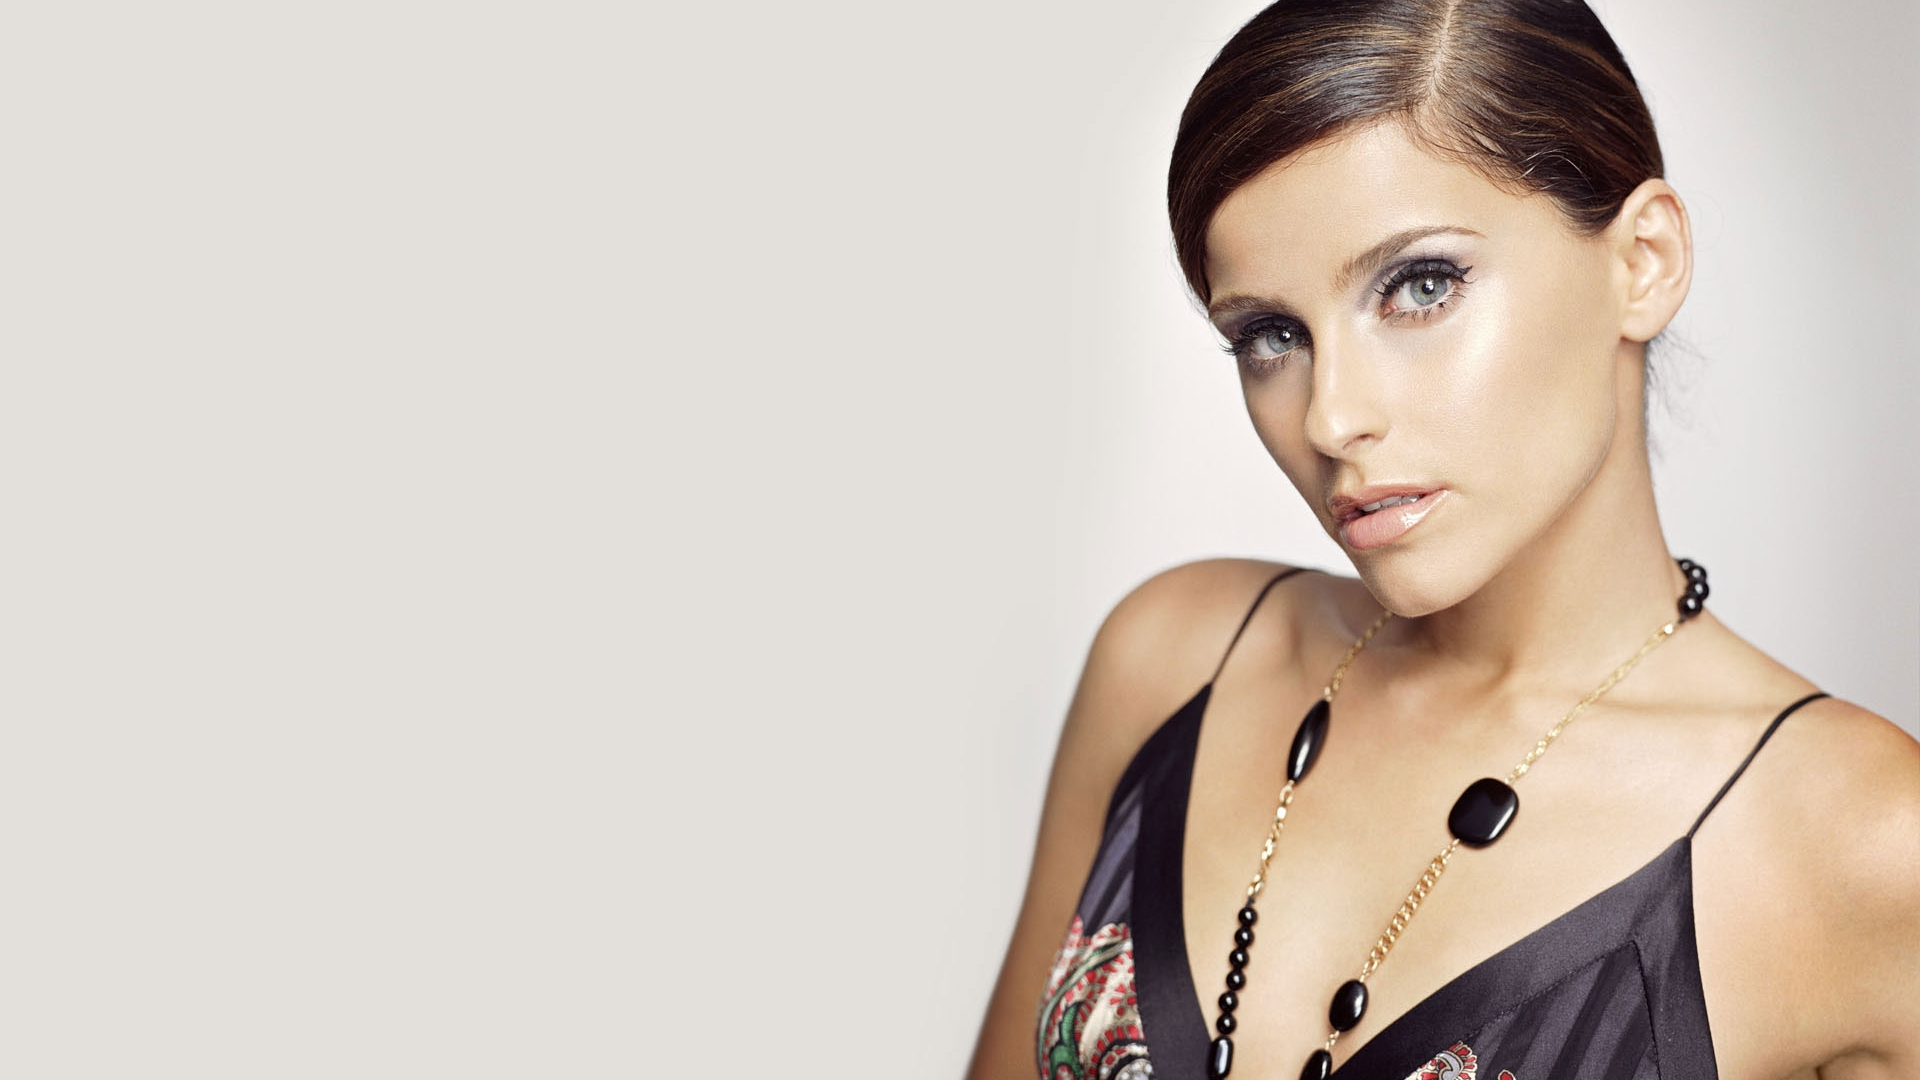 hd nelly furtado wallpapers - photo #2